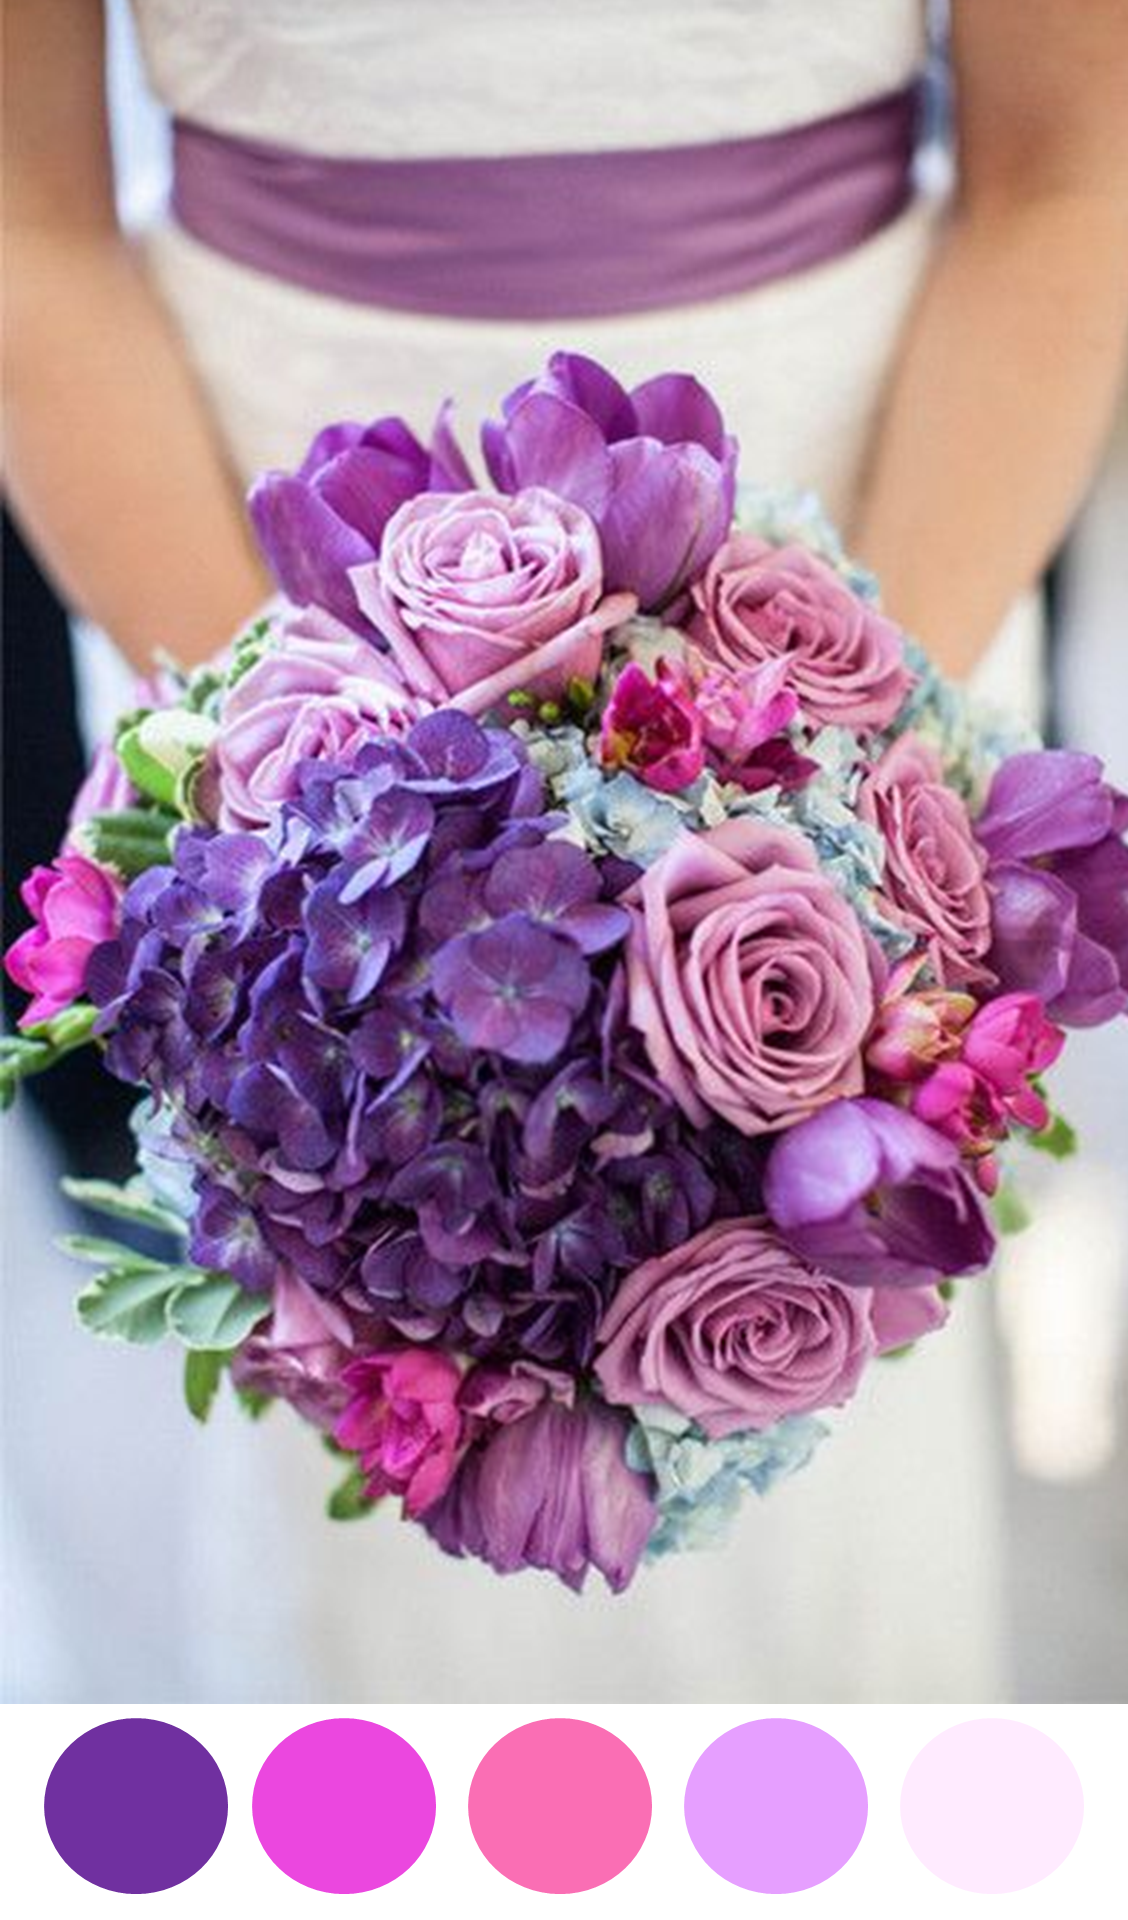 Hochzeit Farben 10 Colorful Bouquets For Your Wedding Day Hochzeit